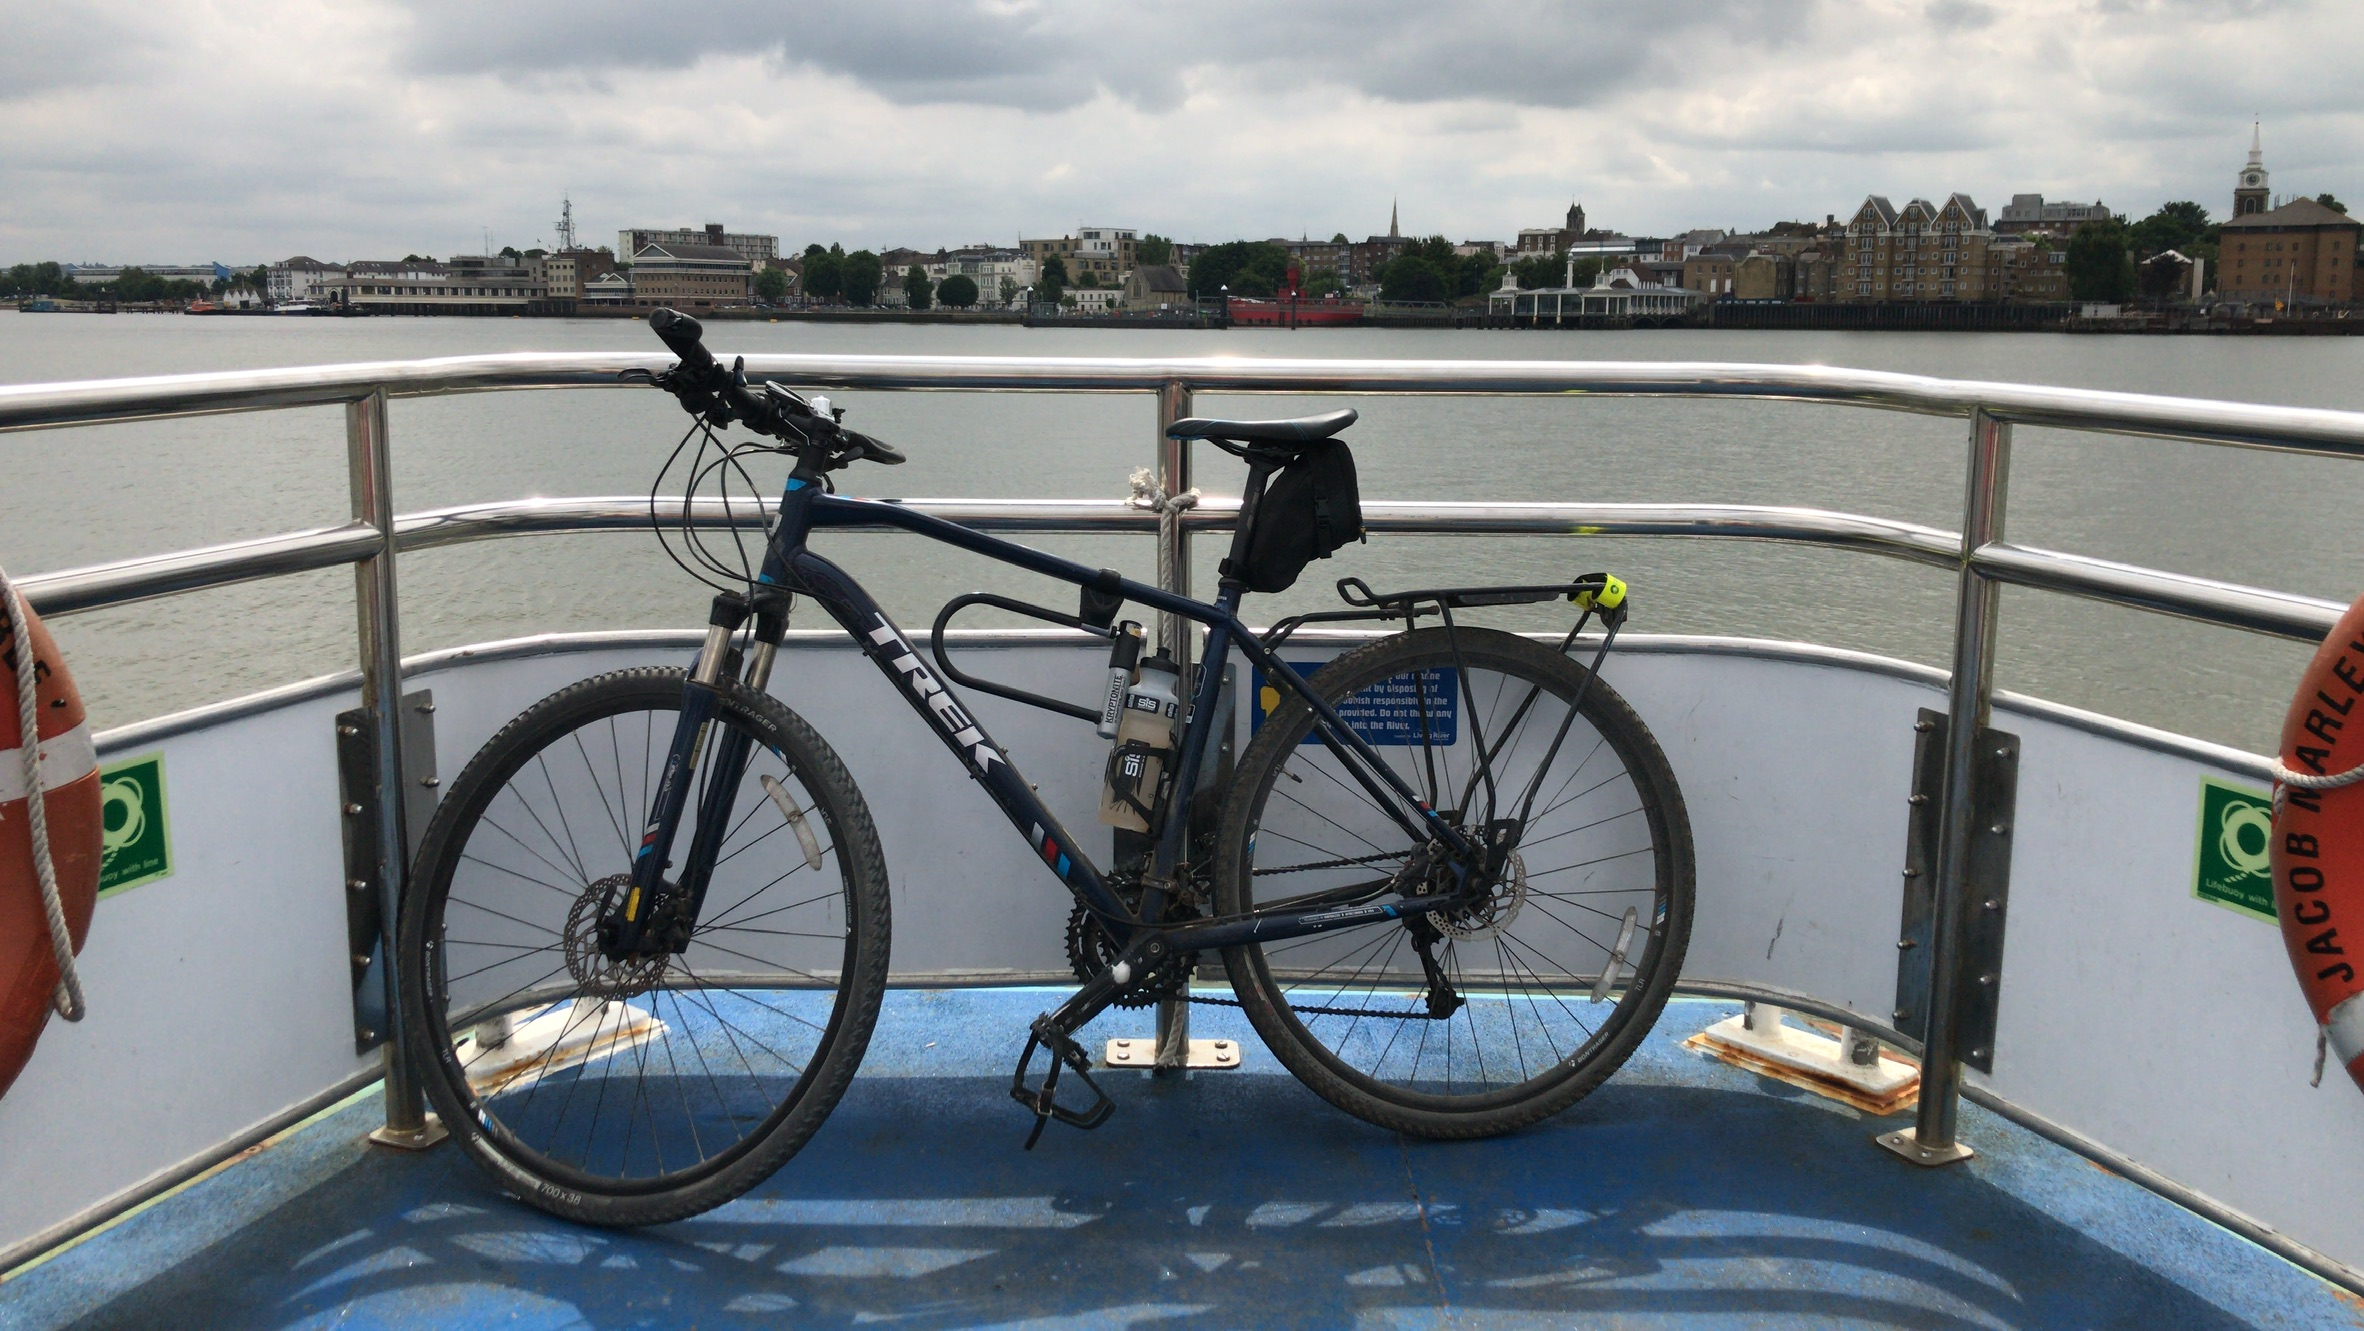 The Oyster Wheel - circumnavigating London on a hybrid bike